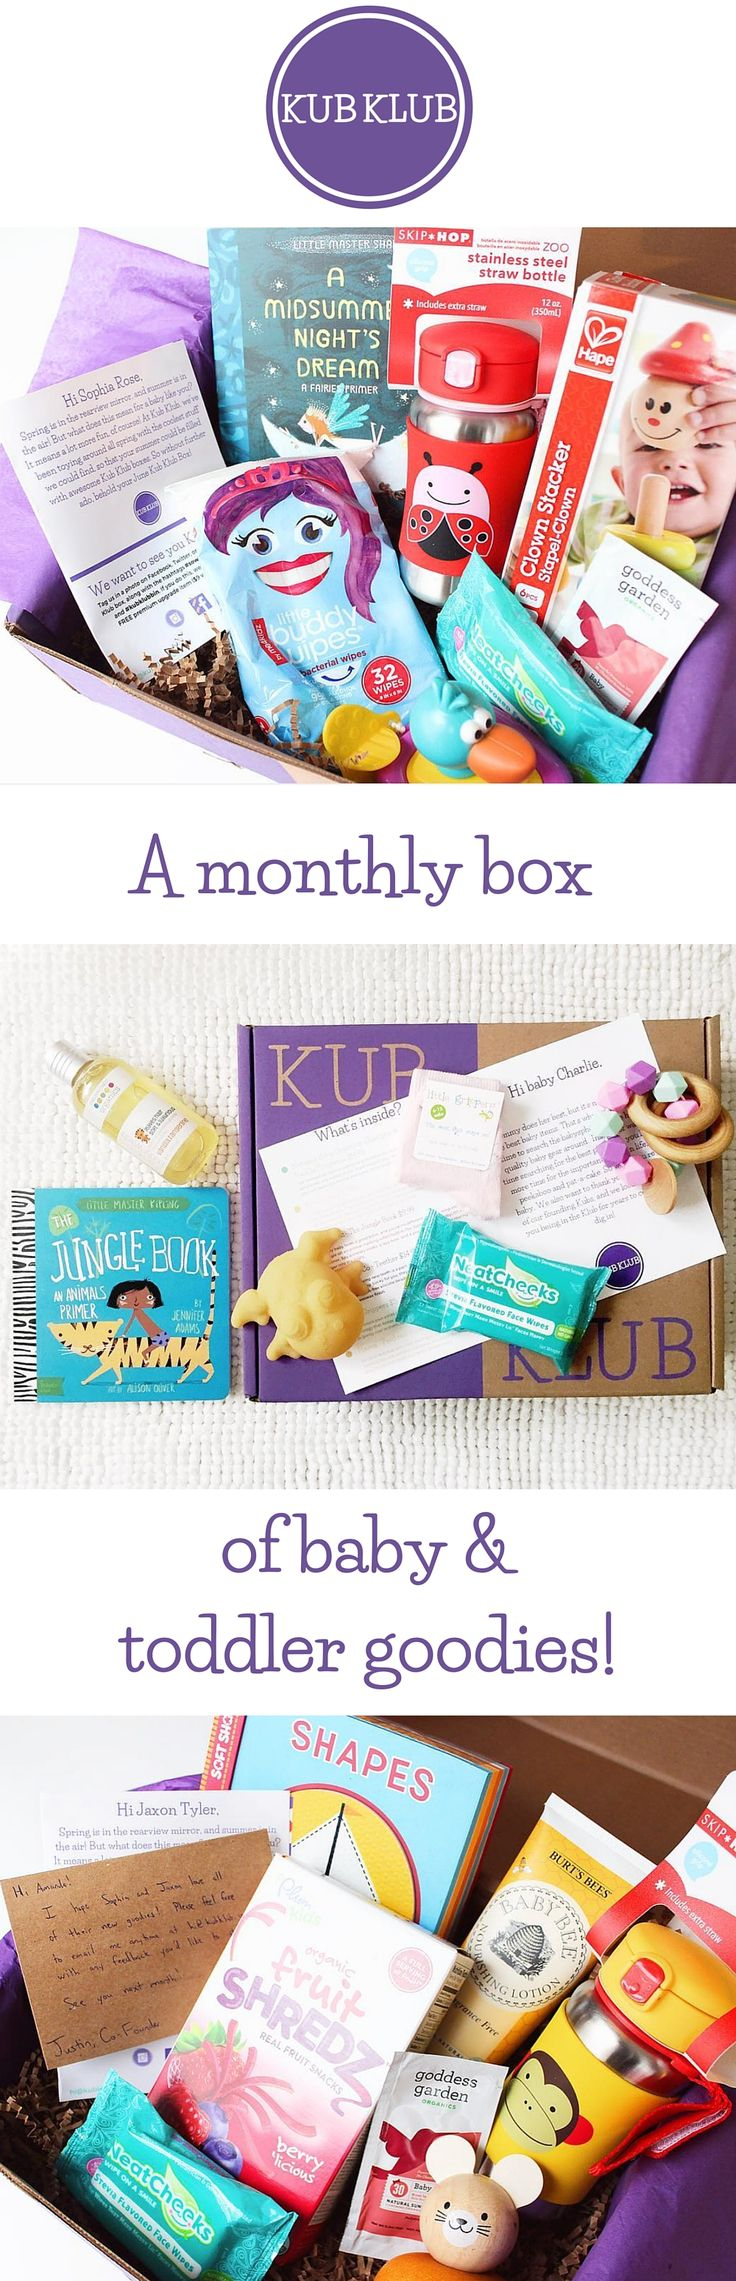 Kub Klub is a carefully curated box of baby and toddler toys, gear, and goodies…